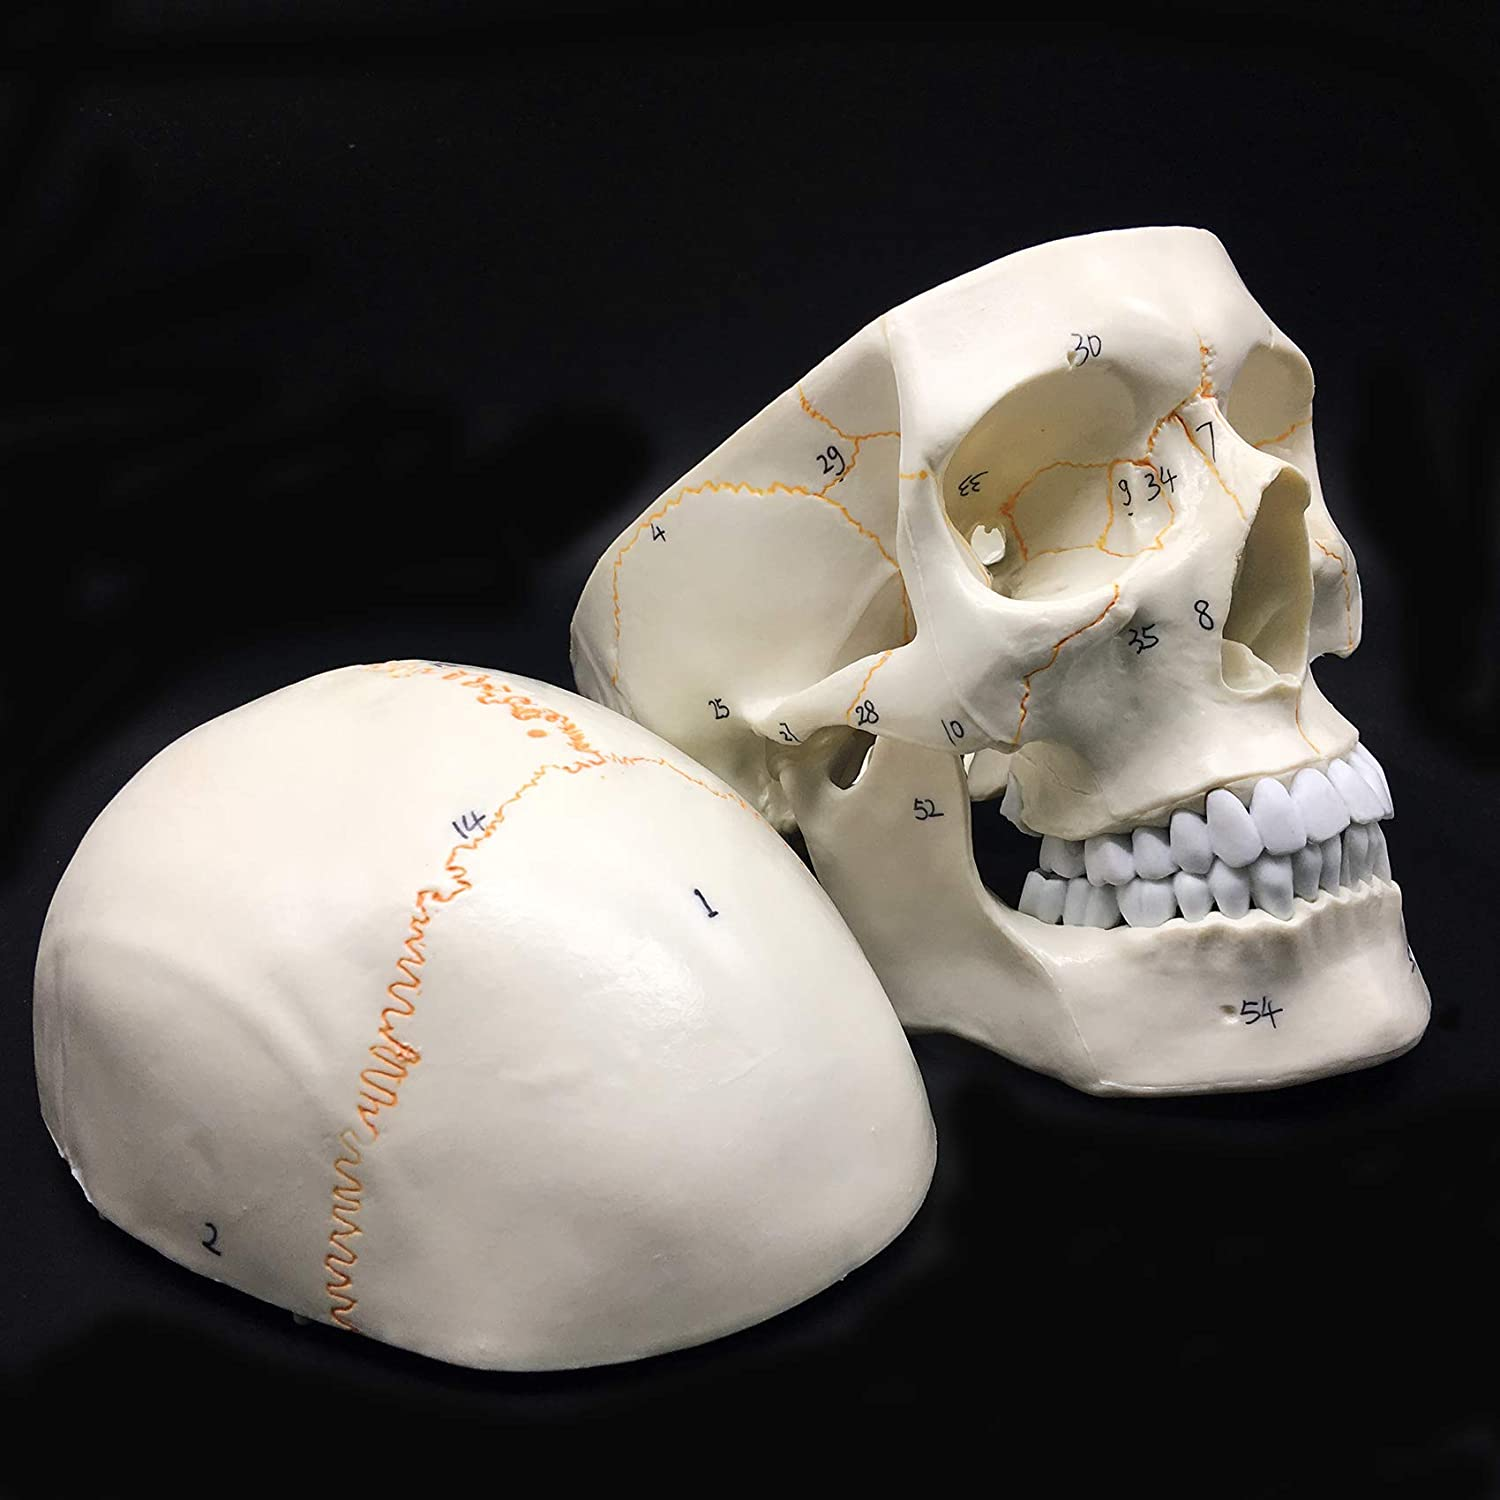 Human Skull Anatomical Model 3-Part Life-Size Anatomy for Science Classroom Study Display Teaching Medical Model